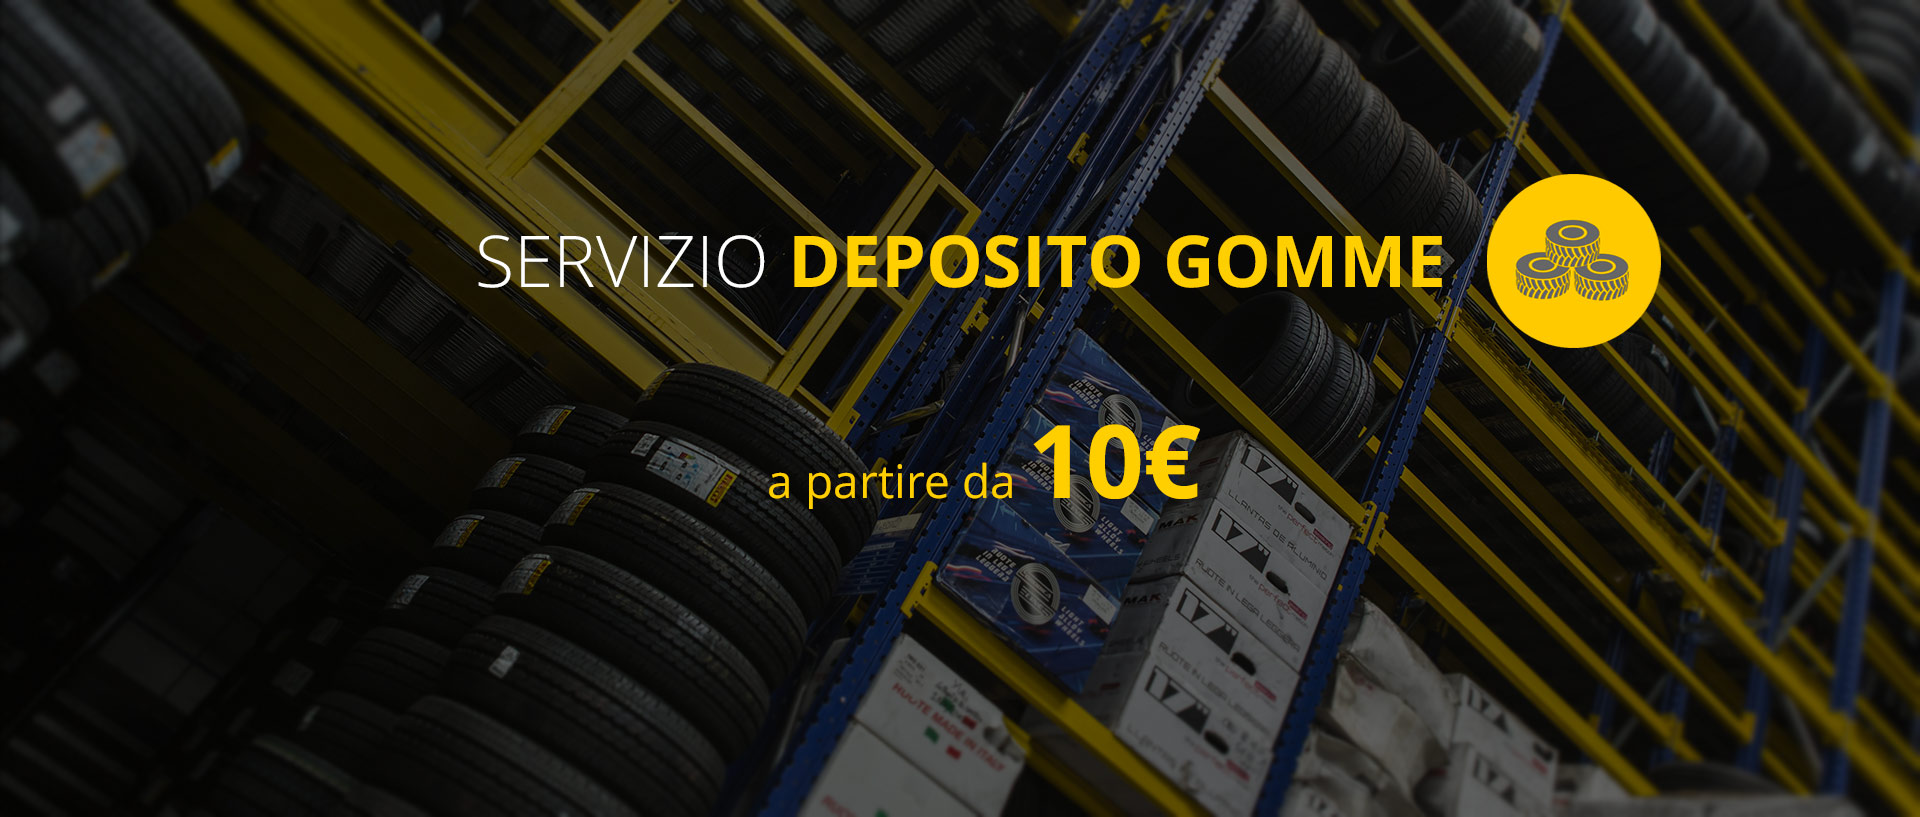 Deposito gomme